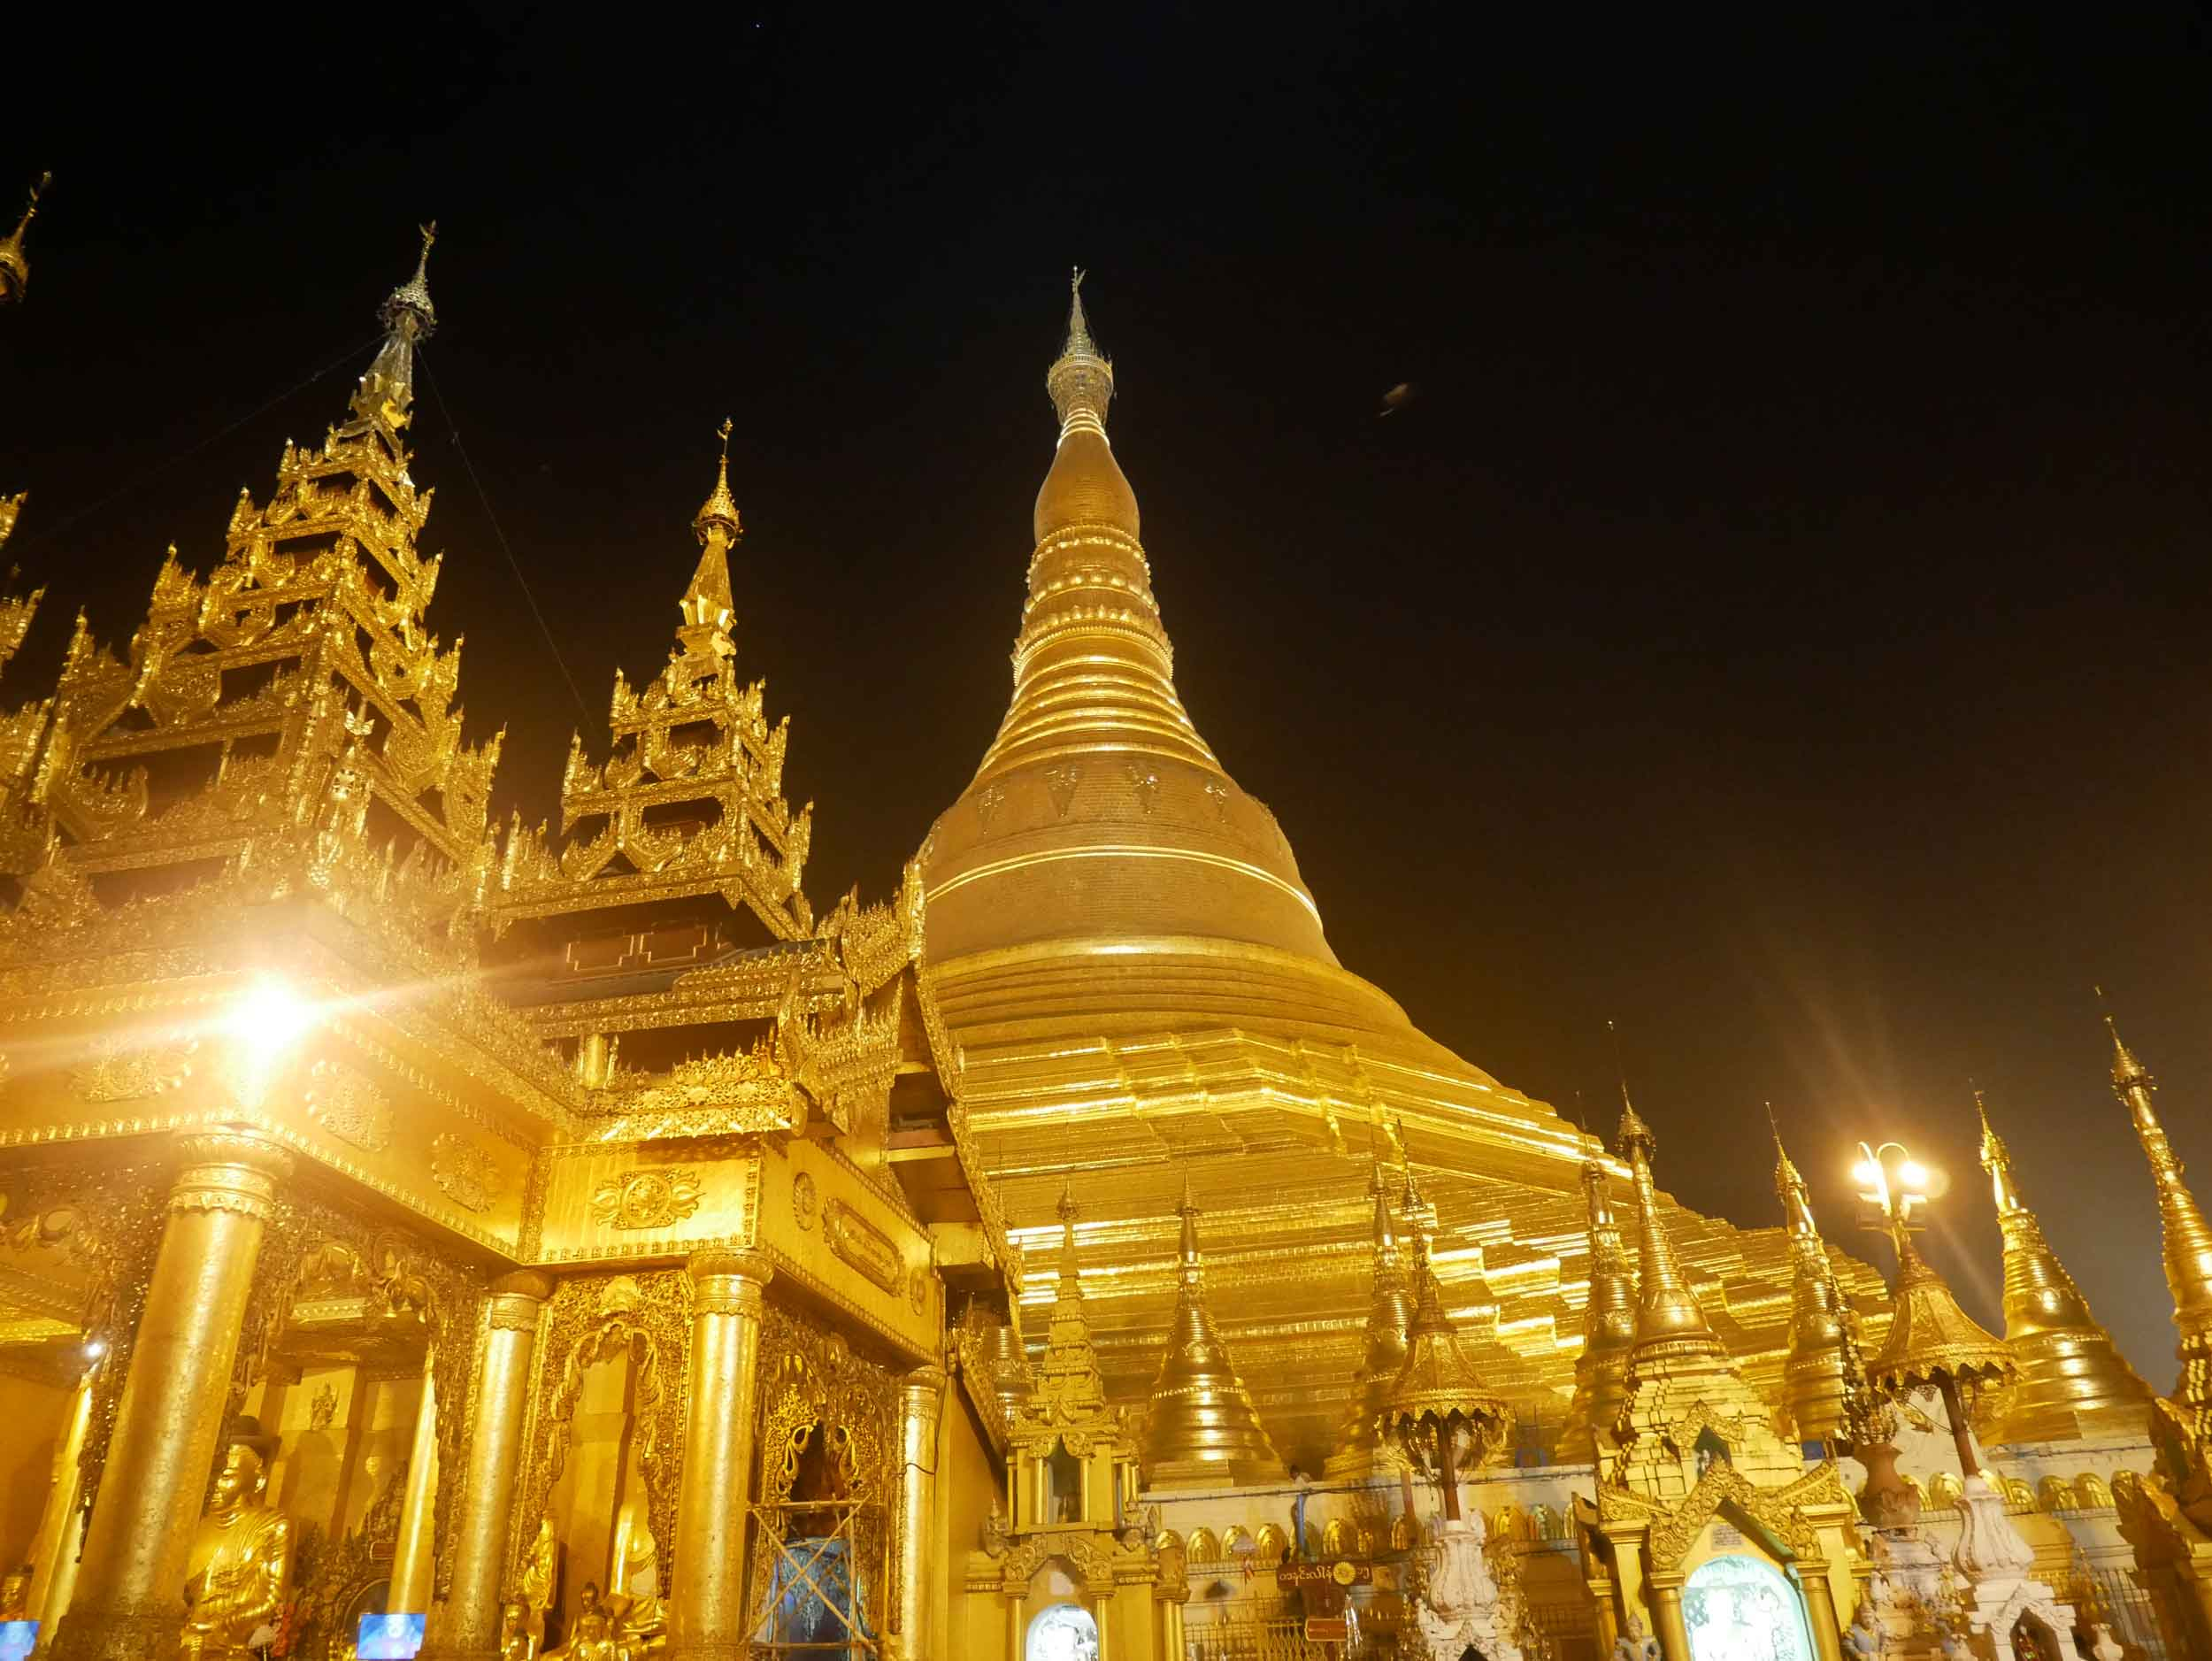 Shwedagon Pagoda in Yangon shines bright in the pre-dawn sky as locals and monks bring their offerings as early as 4am (Feb 9).